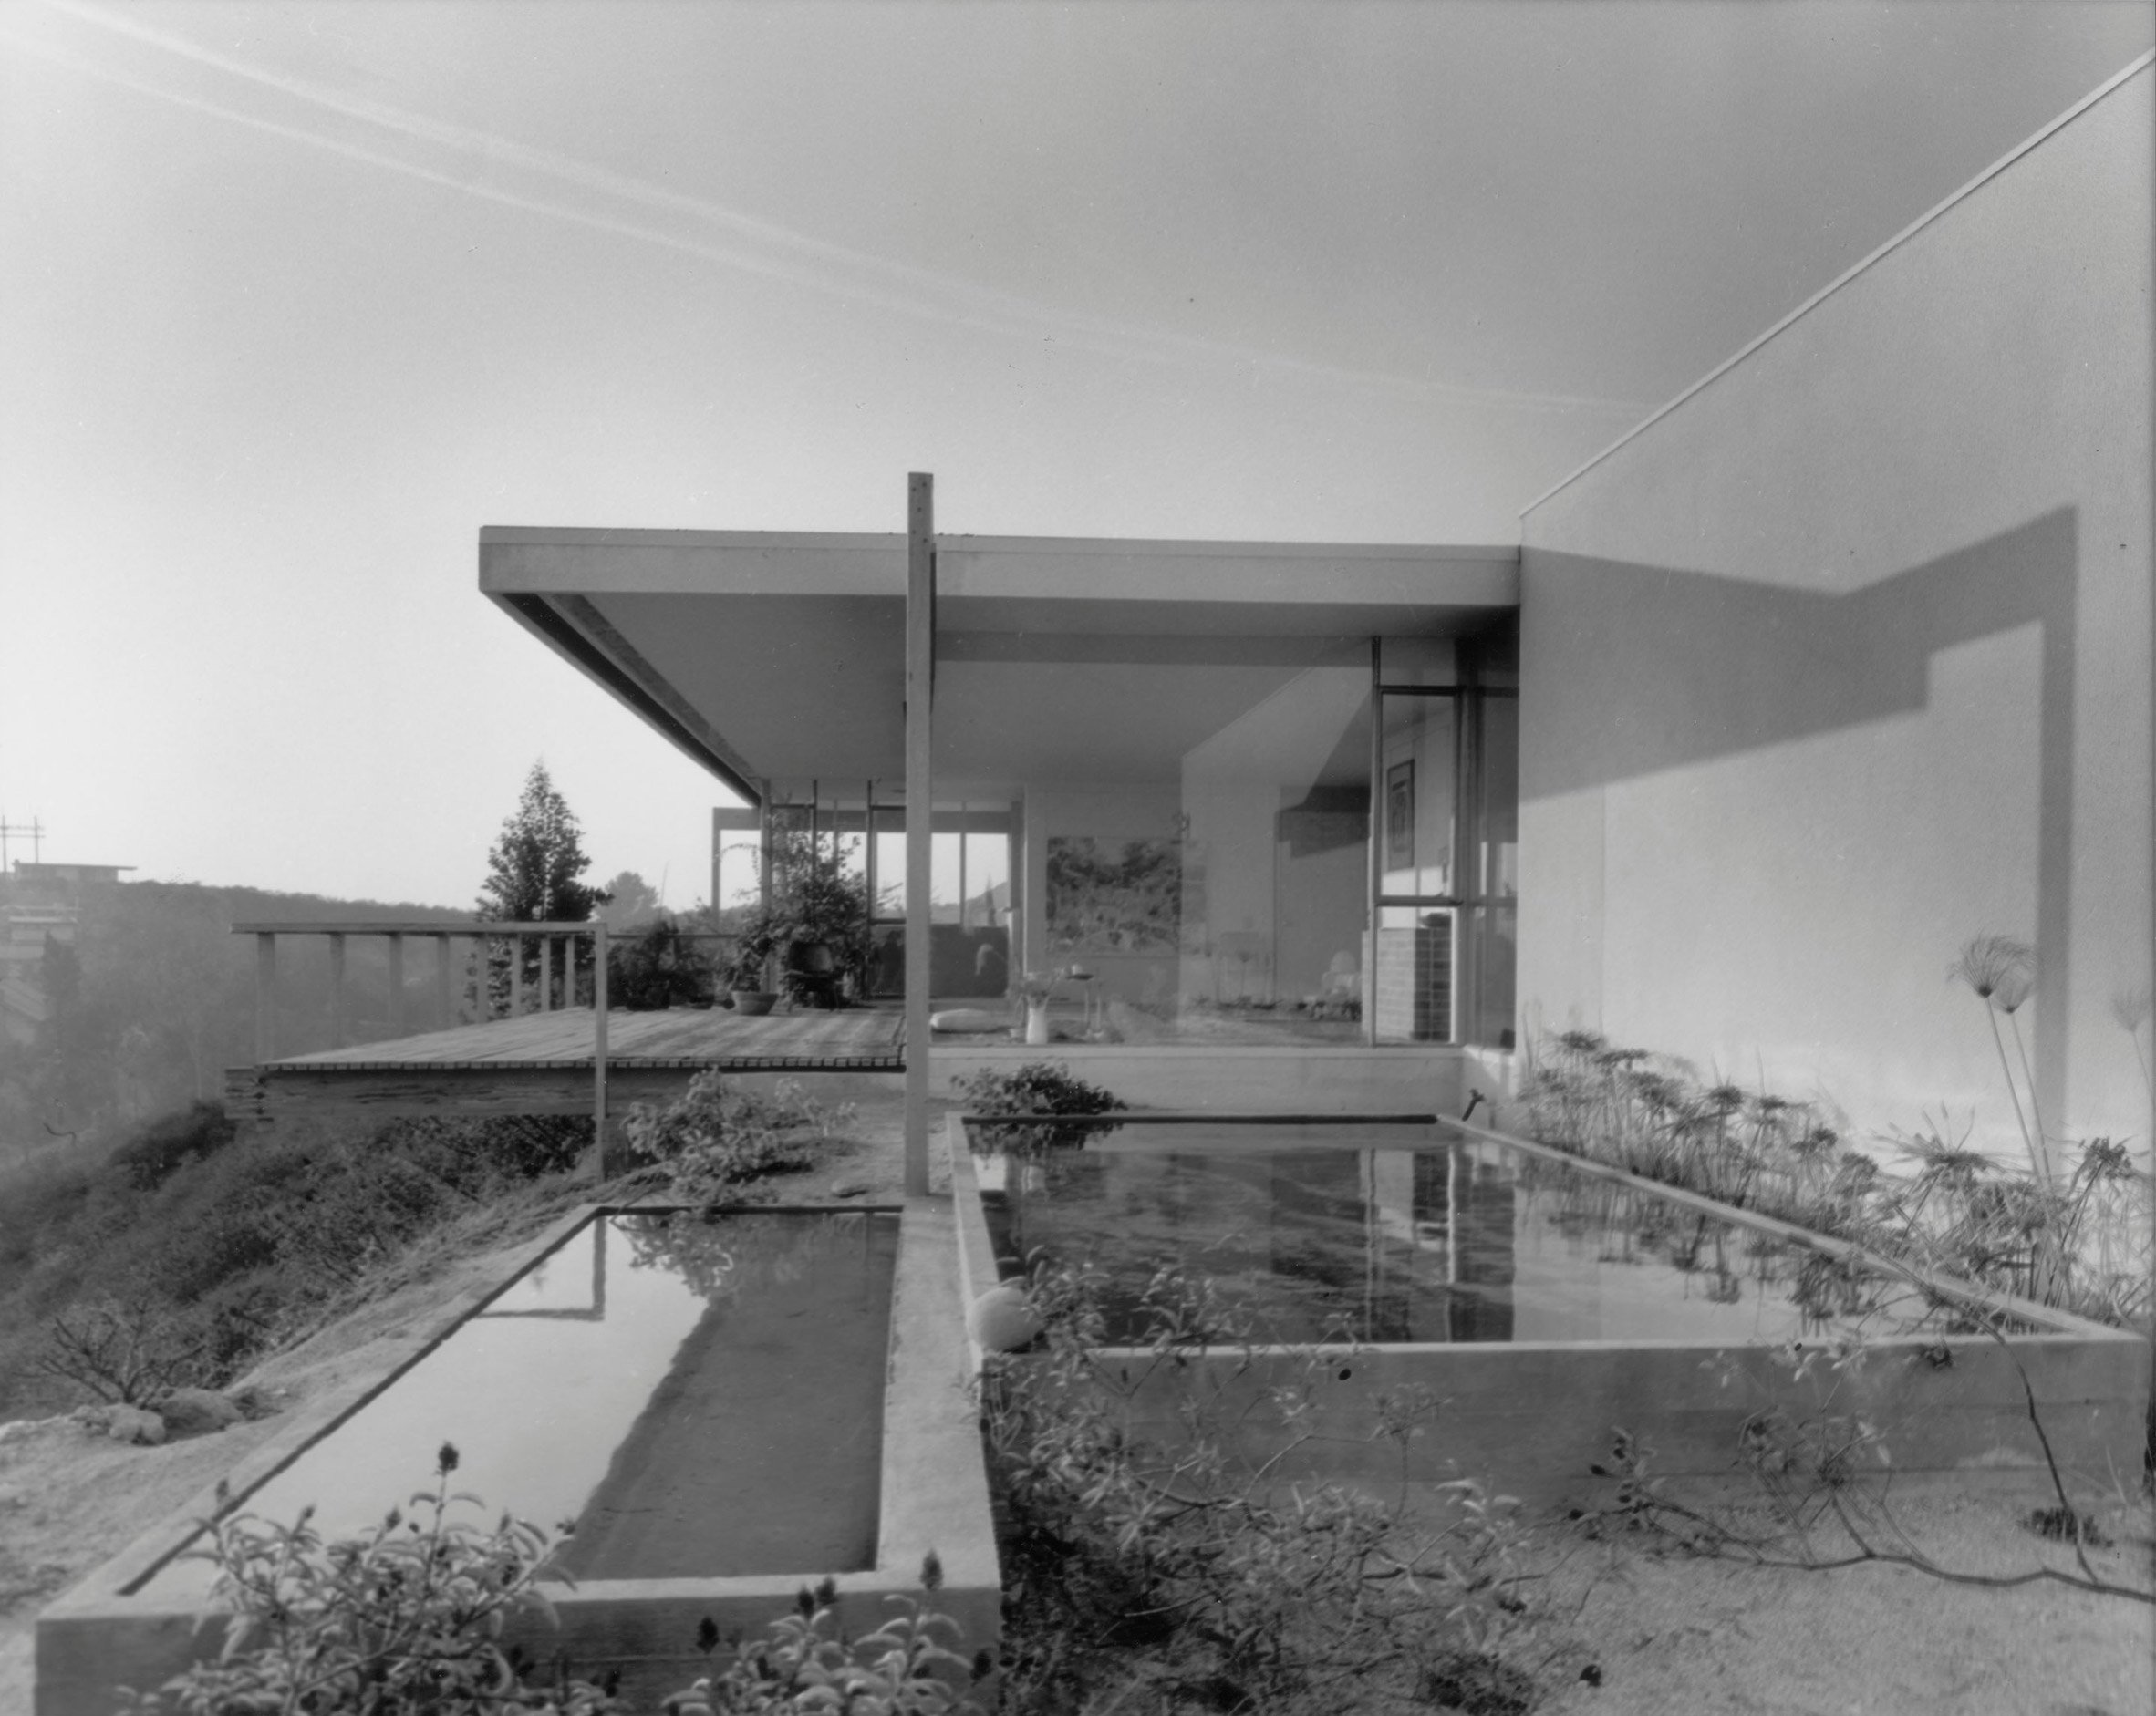 Richard Neutra's Chuey House up for sale as a developable lot